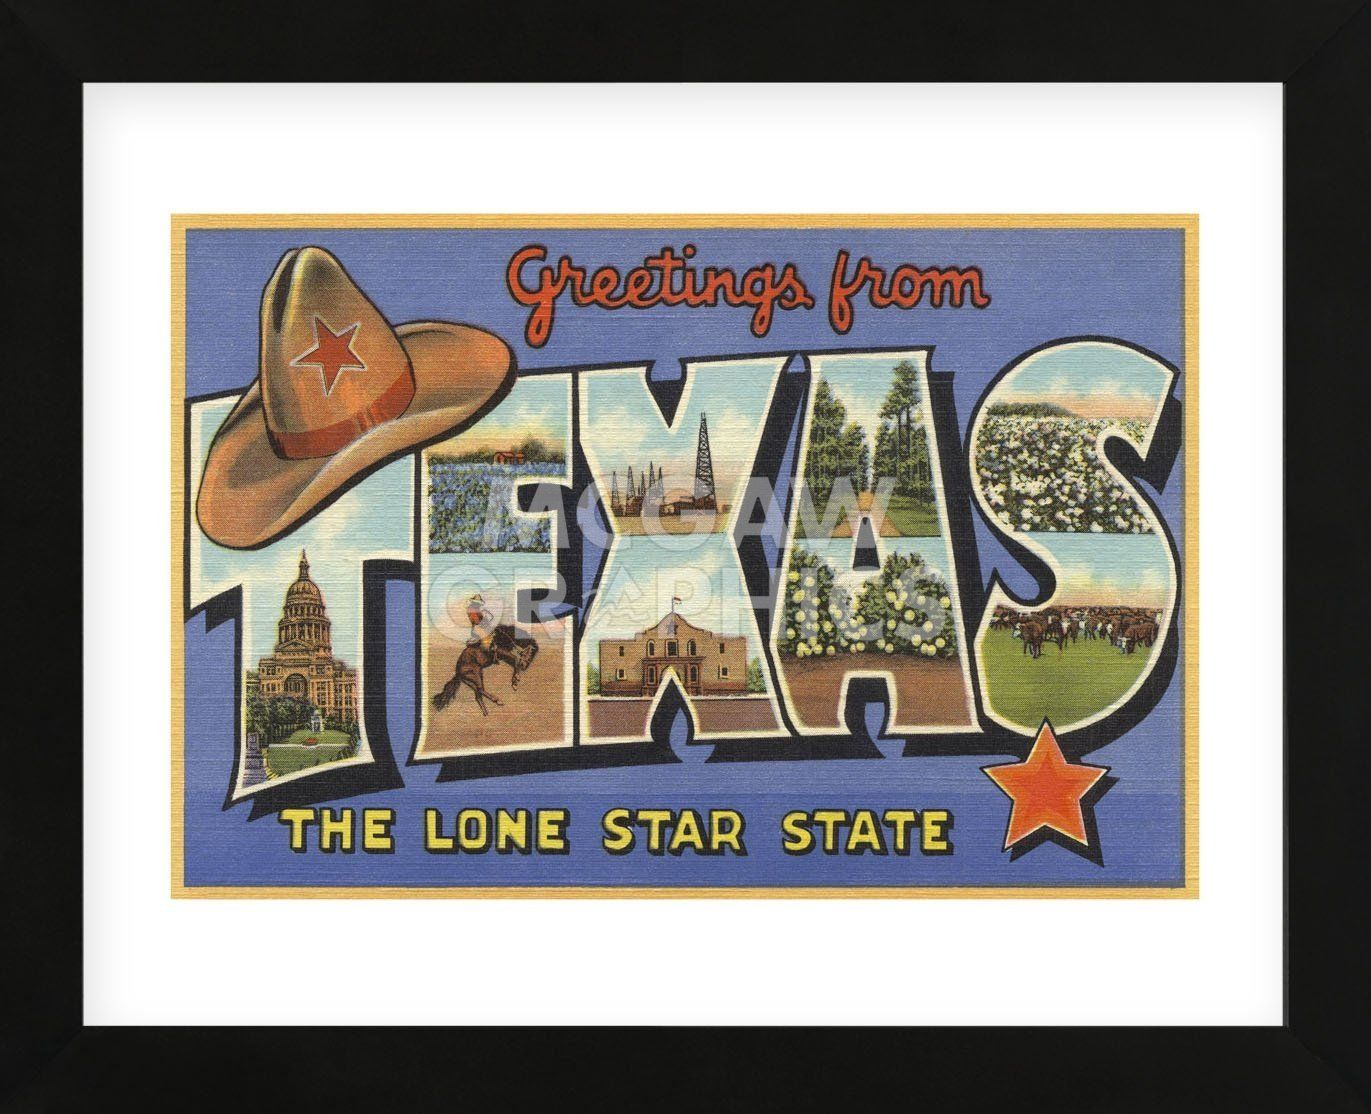 Greetings from texas framed texas and products greetings from texas framed kristyandbryce Choice Image